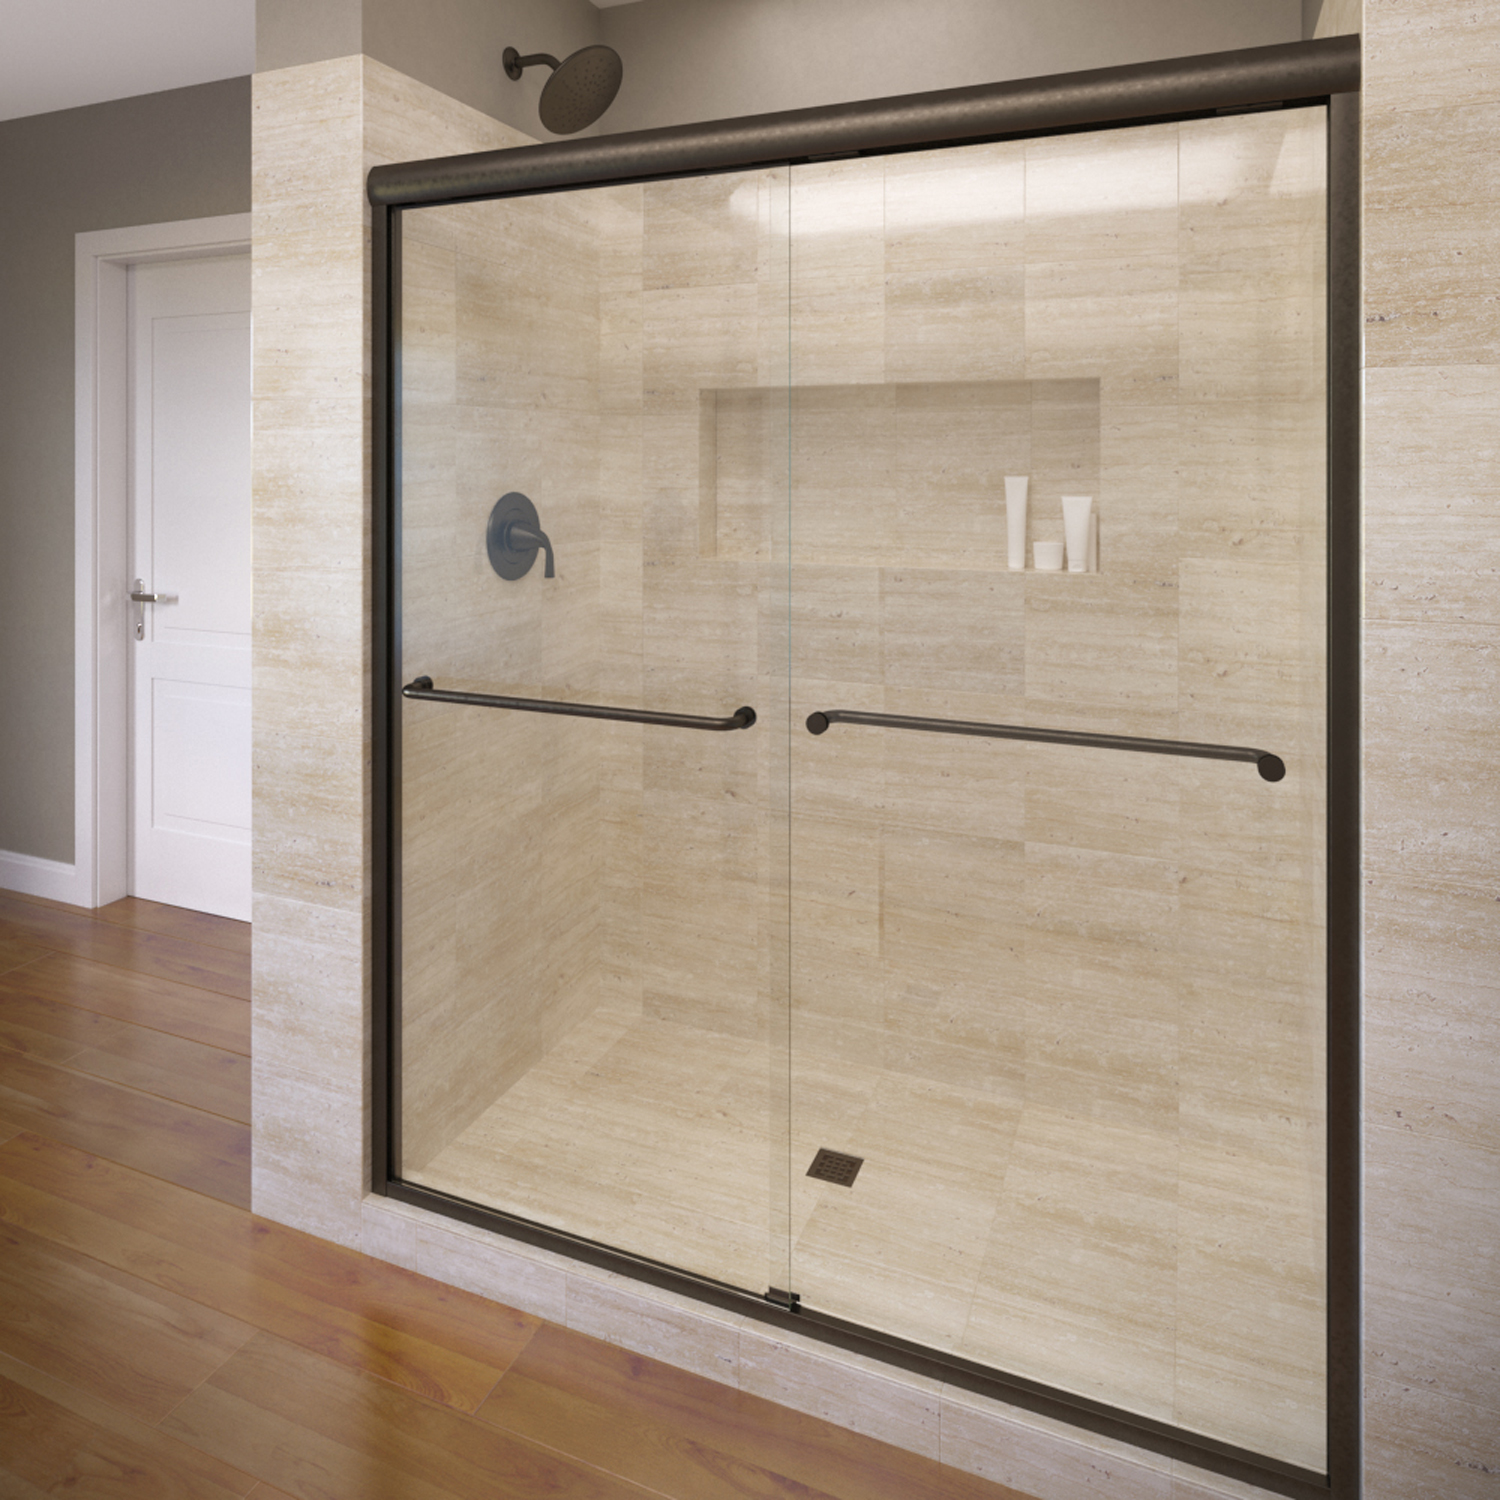 Basco 3850 48clor 48 Celesta Sliding Shower Enclosure With